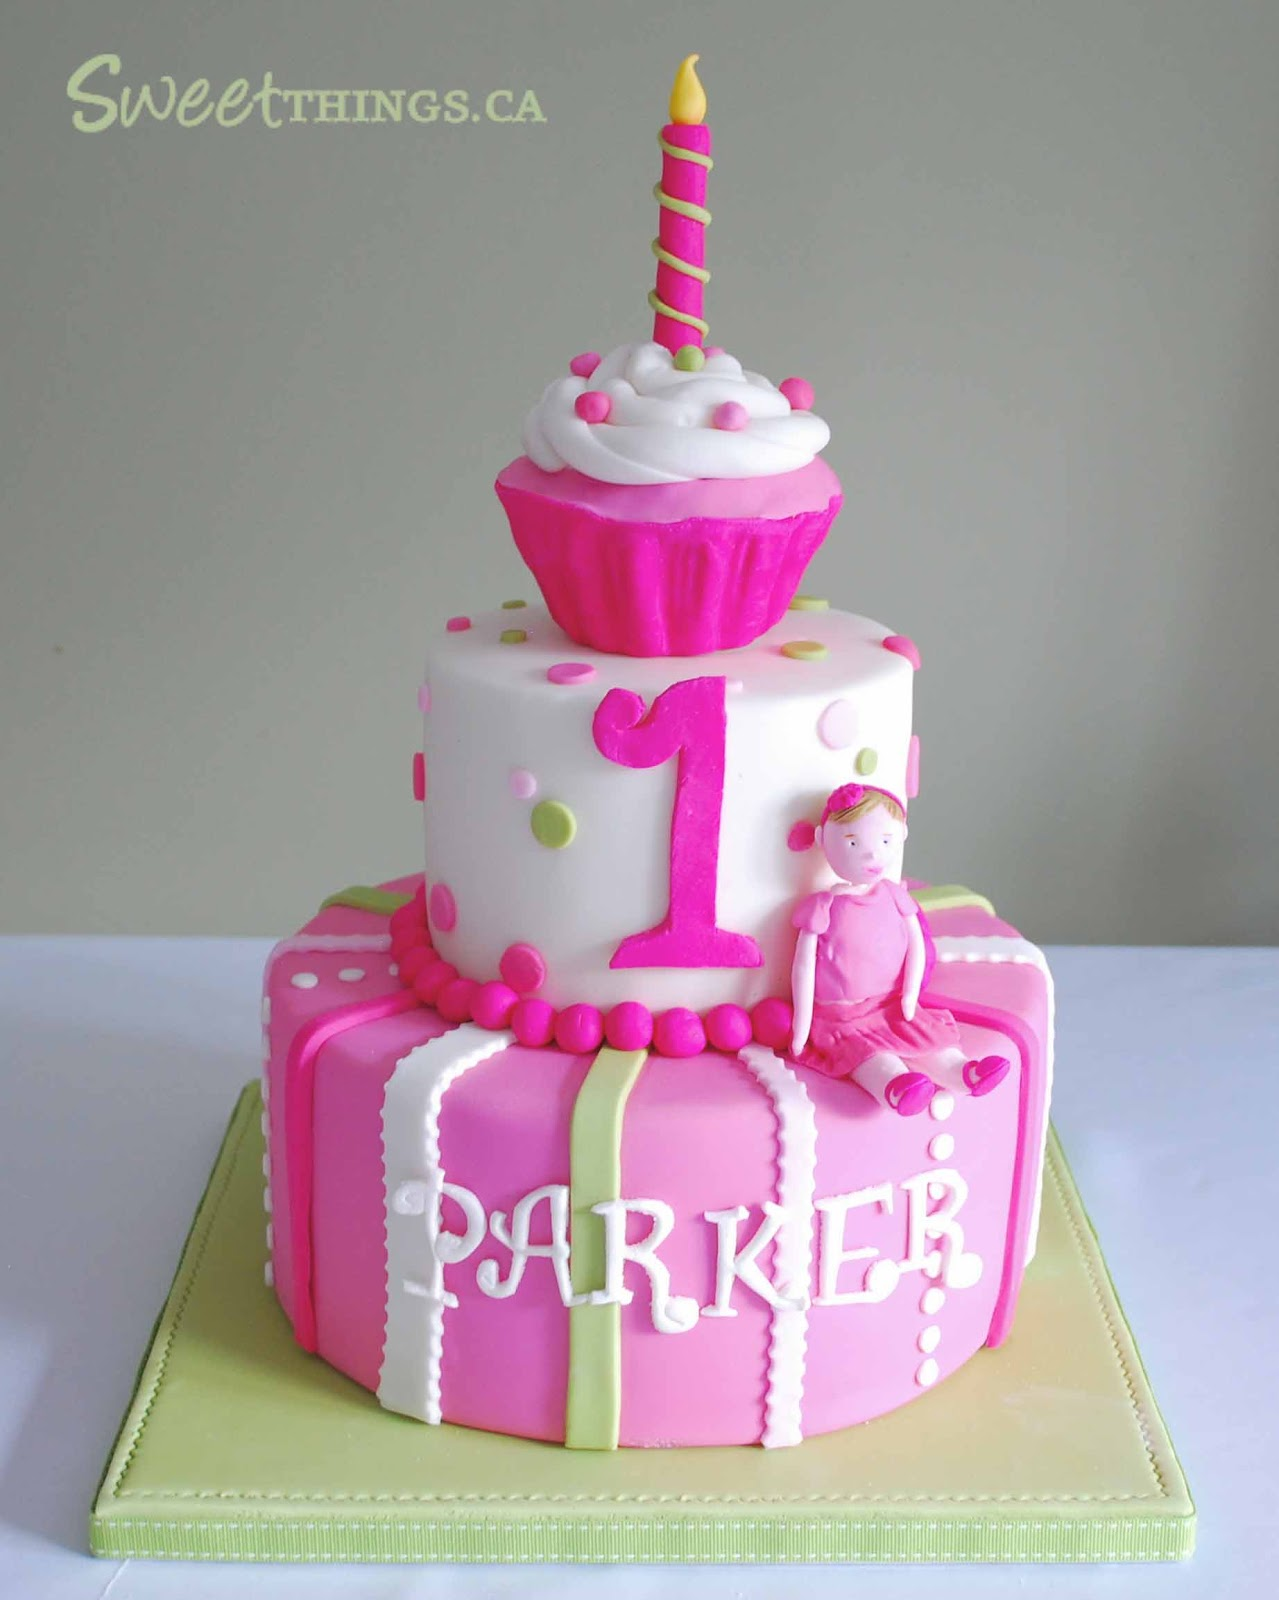 SweetThings: Colorful 1st Birthday Cake